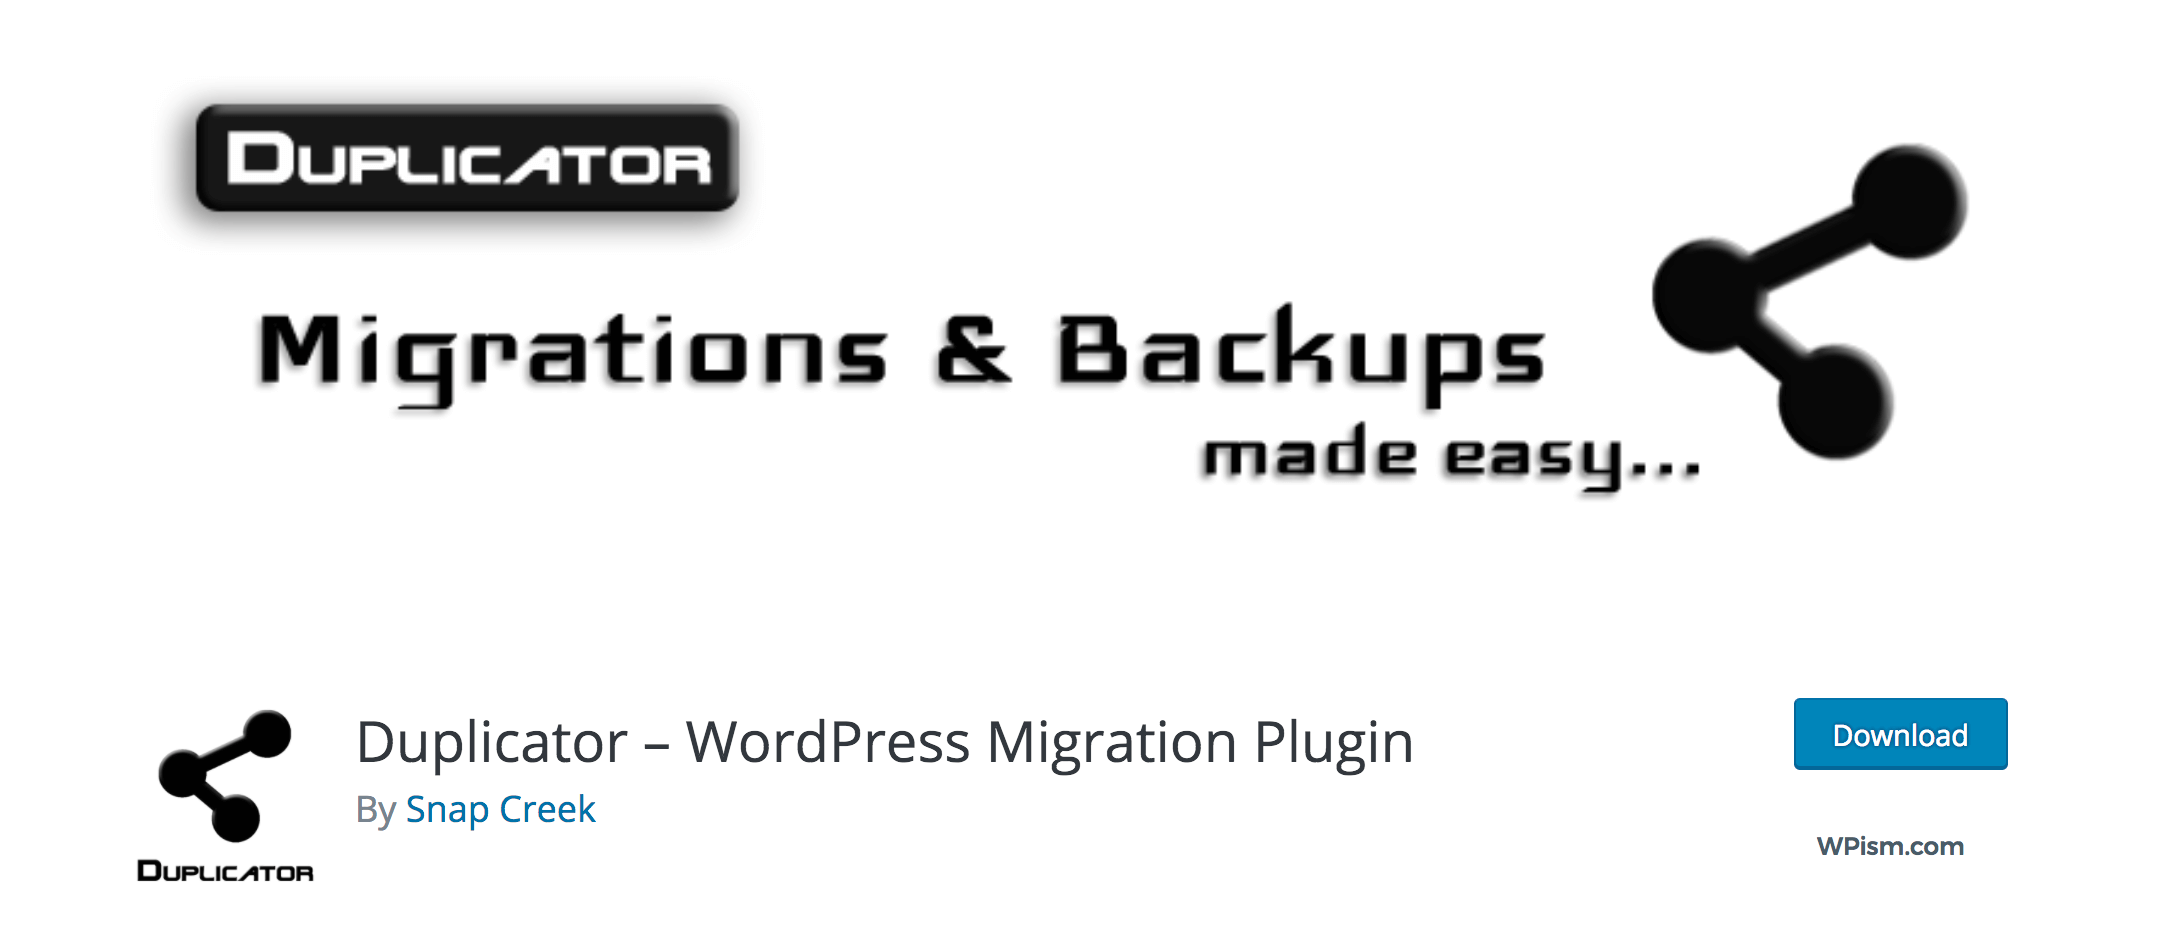 Duplicator WordPress Plugin Migration Plugin